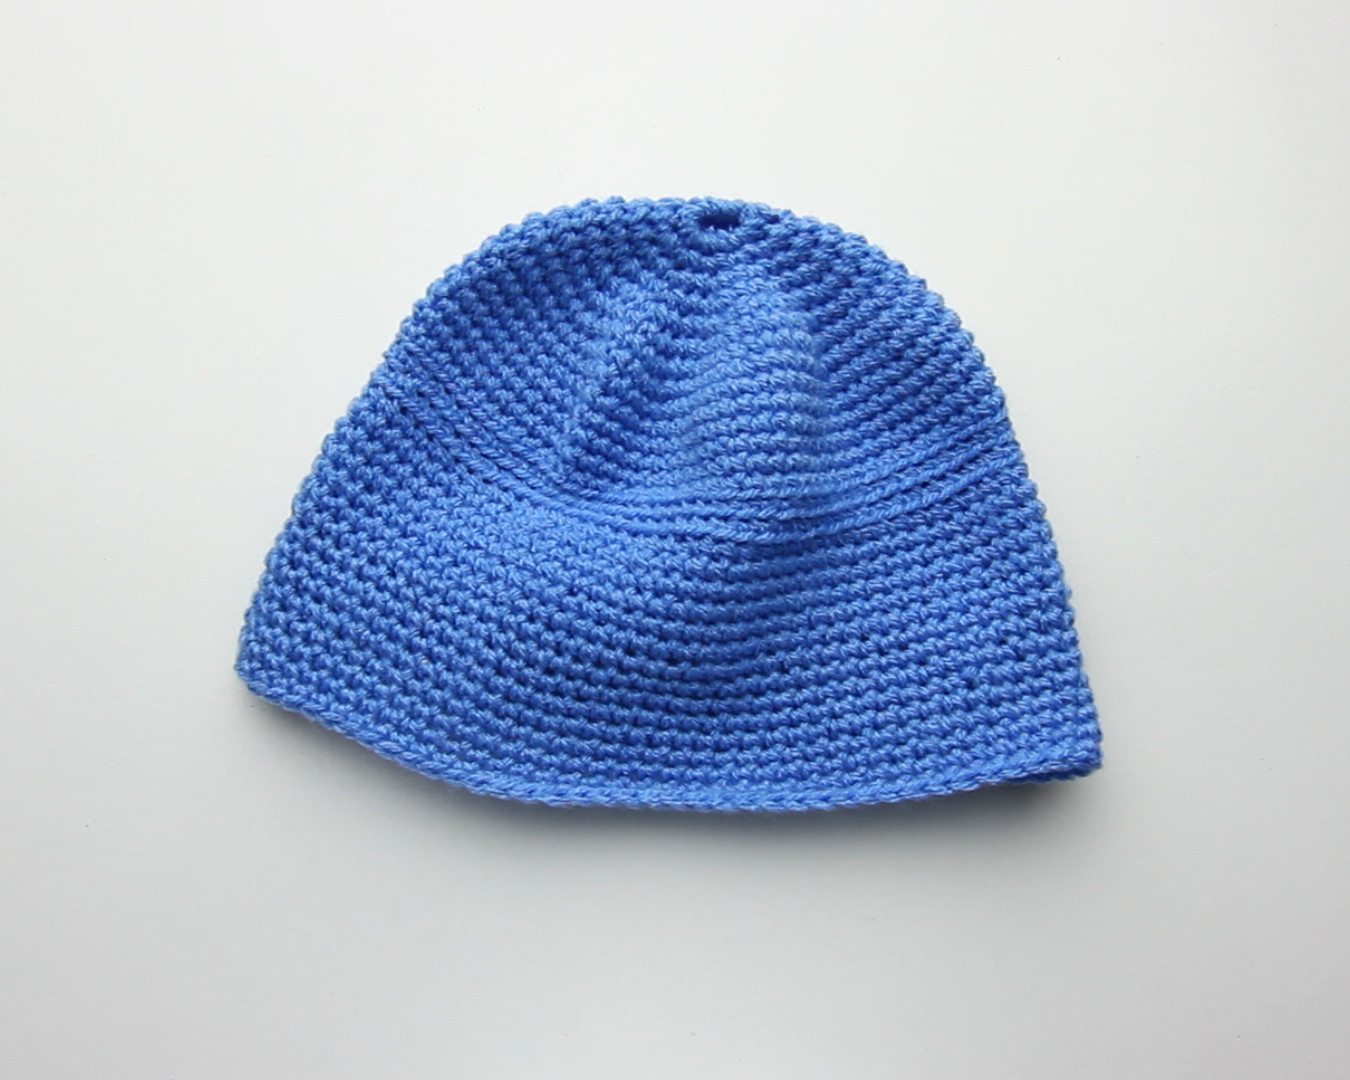 Awesome 3 Simple Ways to Crochet A Hat for Beginners Wikihow Crochet Hat for Beginners Of Amazing 44 Images Crochet Hat for Beginners